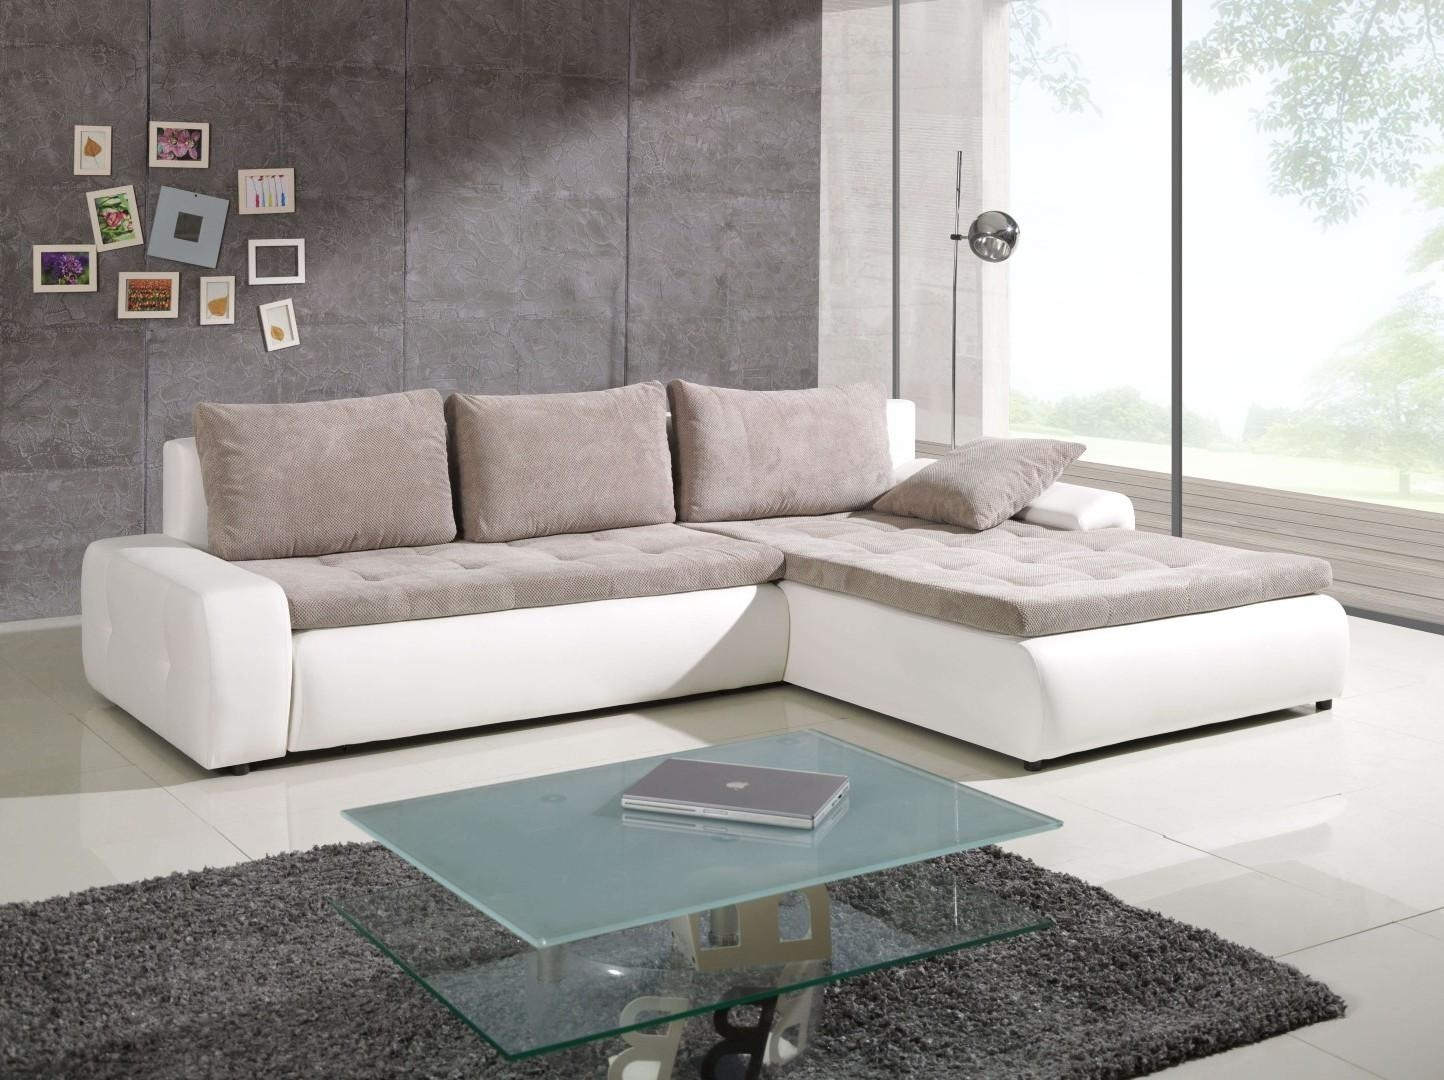 Shop Galileo Sectional Sleeper Sofa With Storage Universal Intended For Sectional Sofa With Storage (Image 13 of 20)